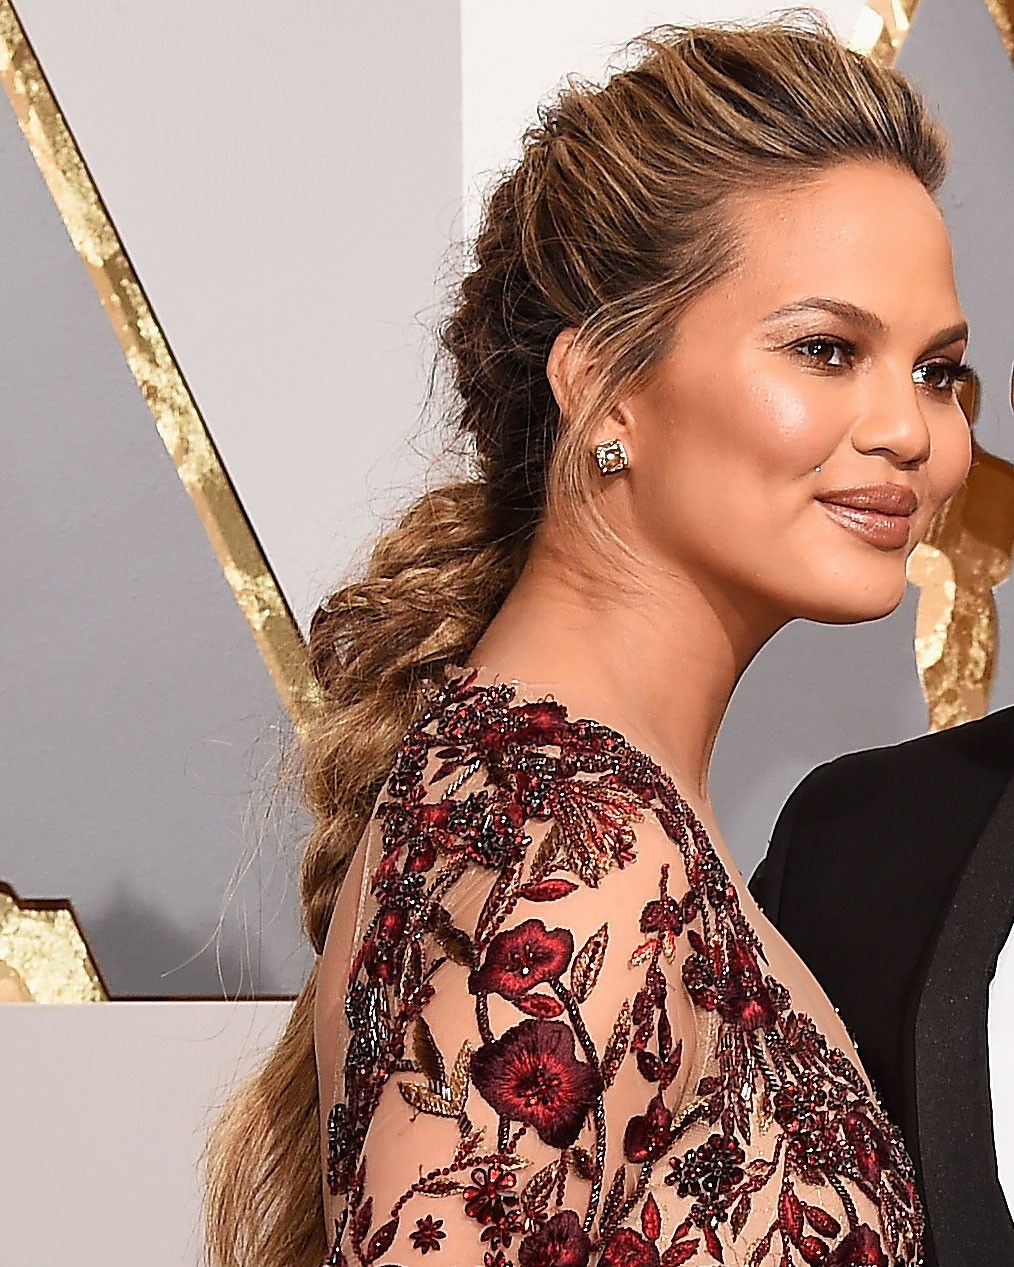 Chrissy teigen looks gorgeous in this messy textured braid with lots